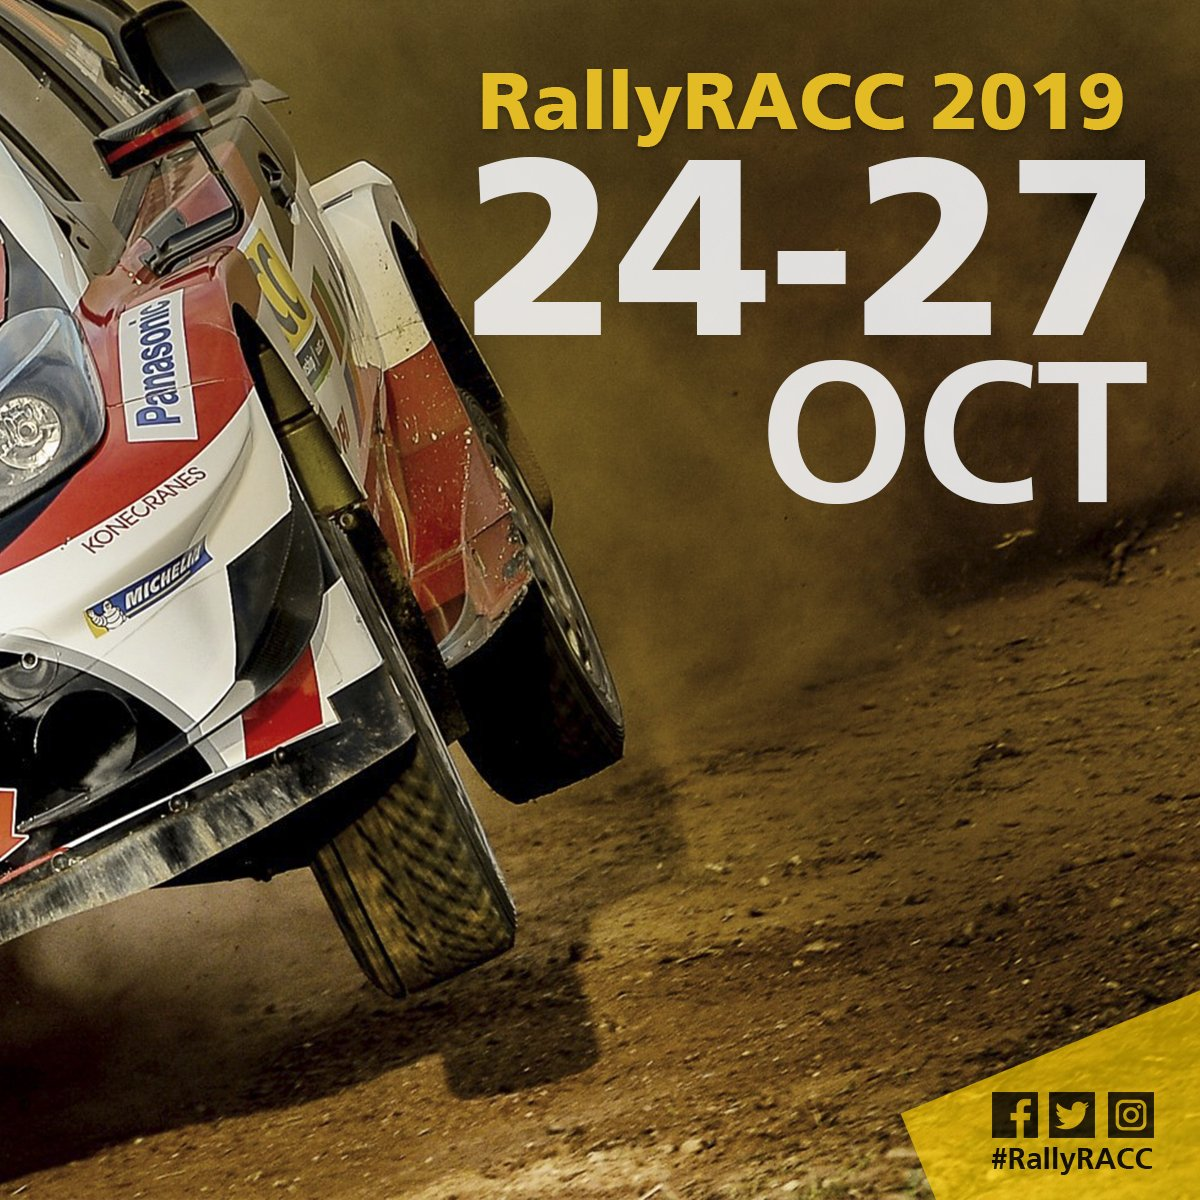 Calendario Wrc 2019.Rallyracc On Twitter Calendario Wrc 2019 Calendari Wrc 2019